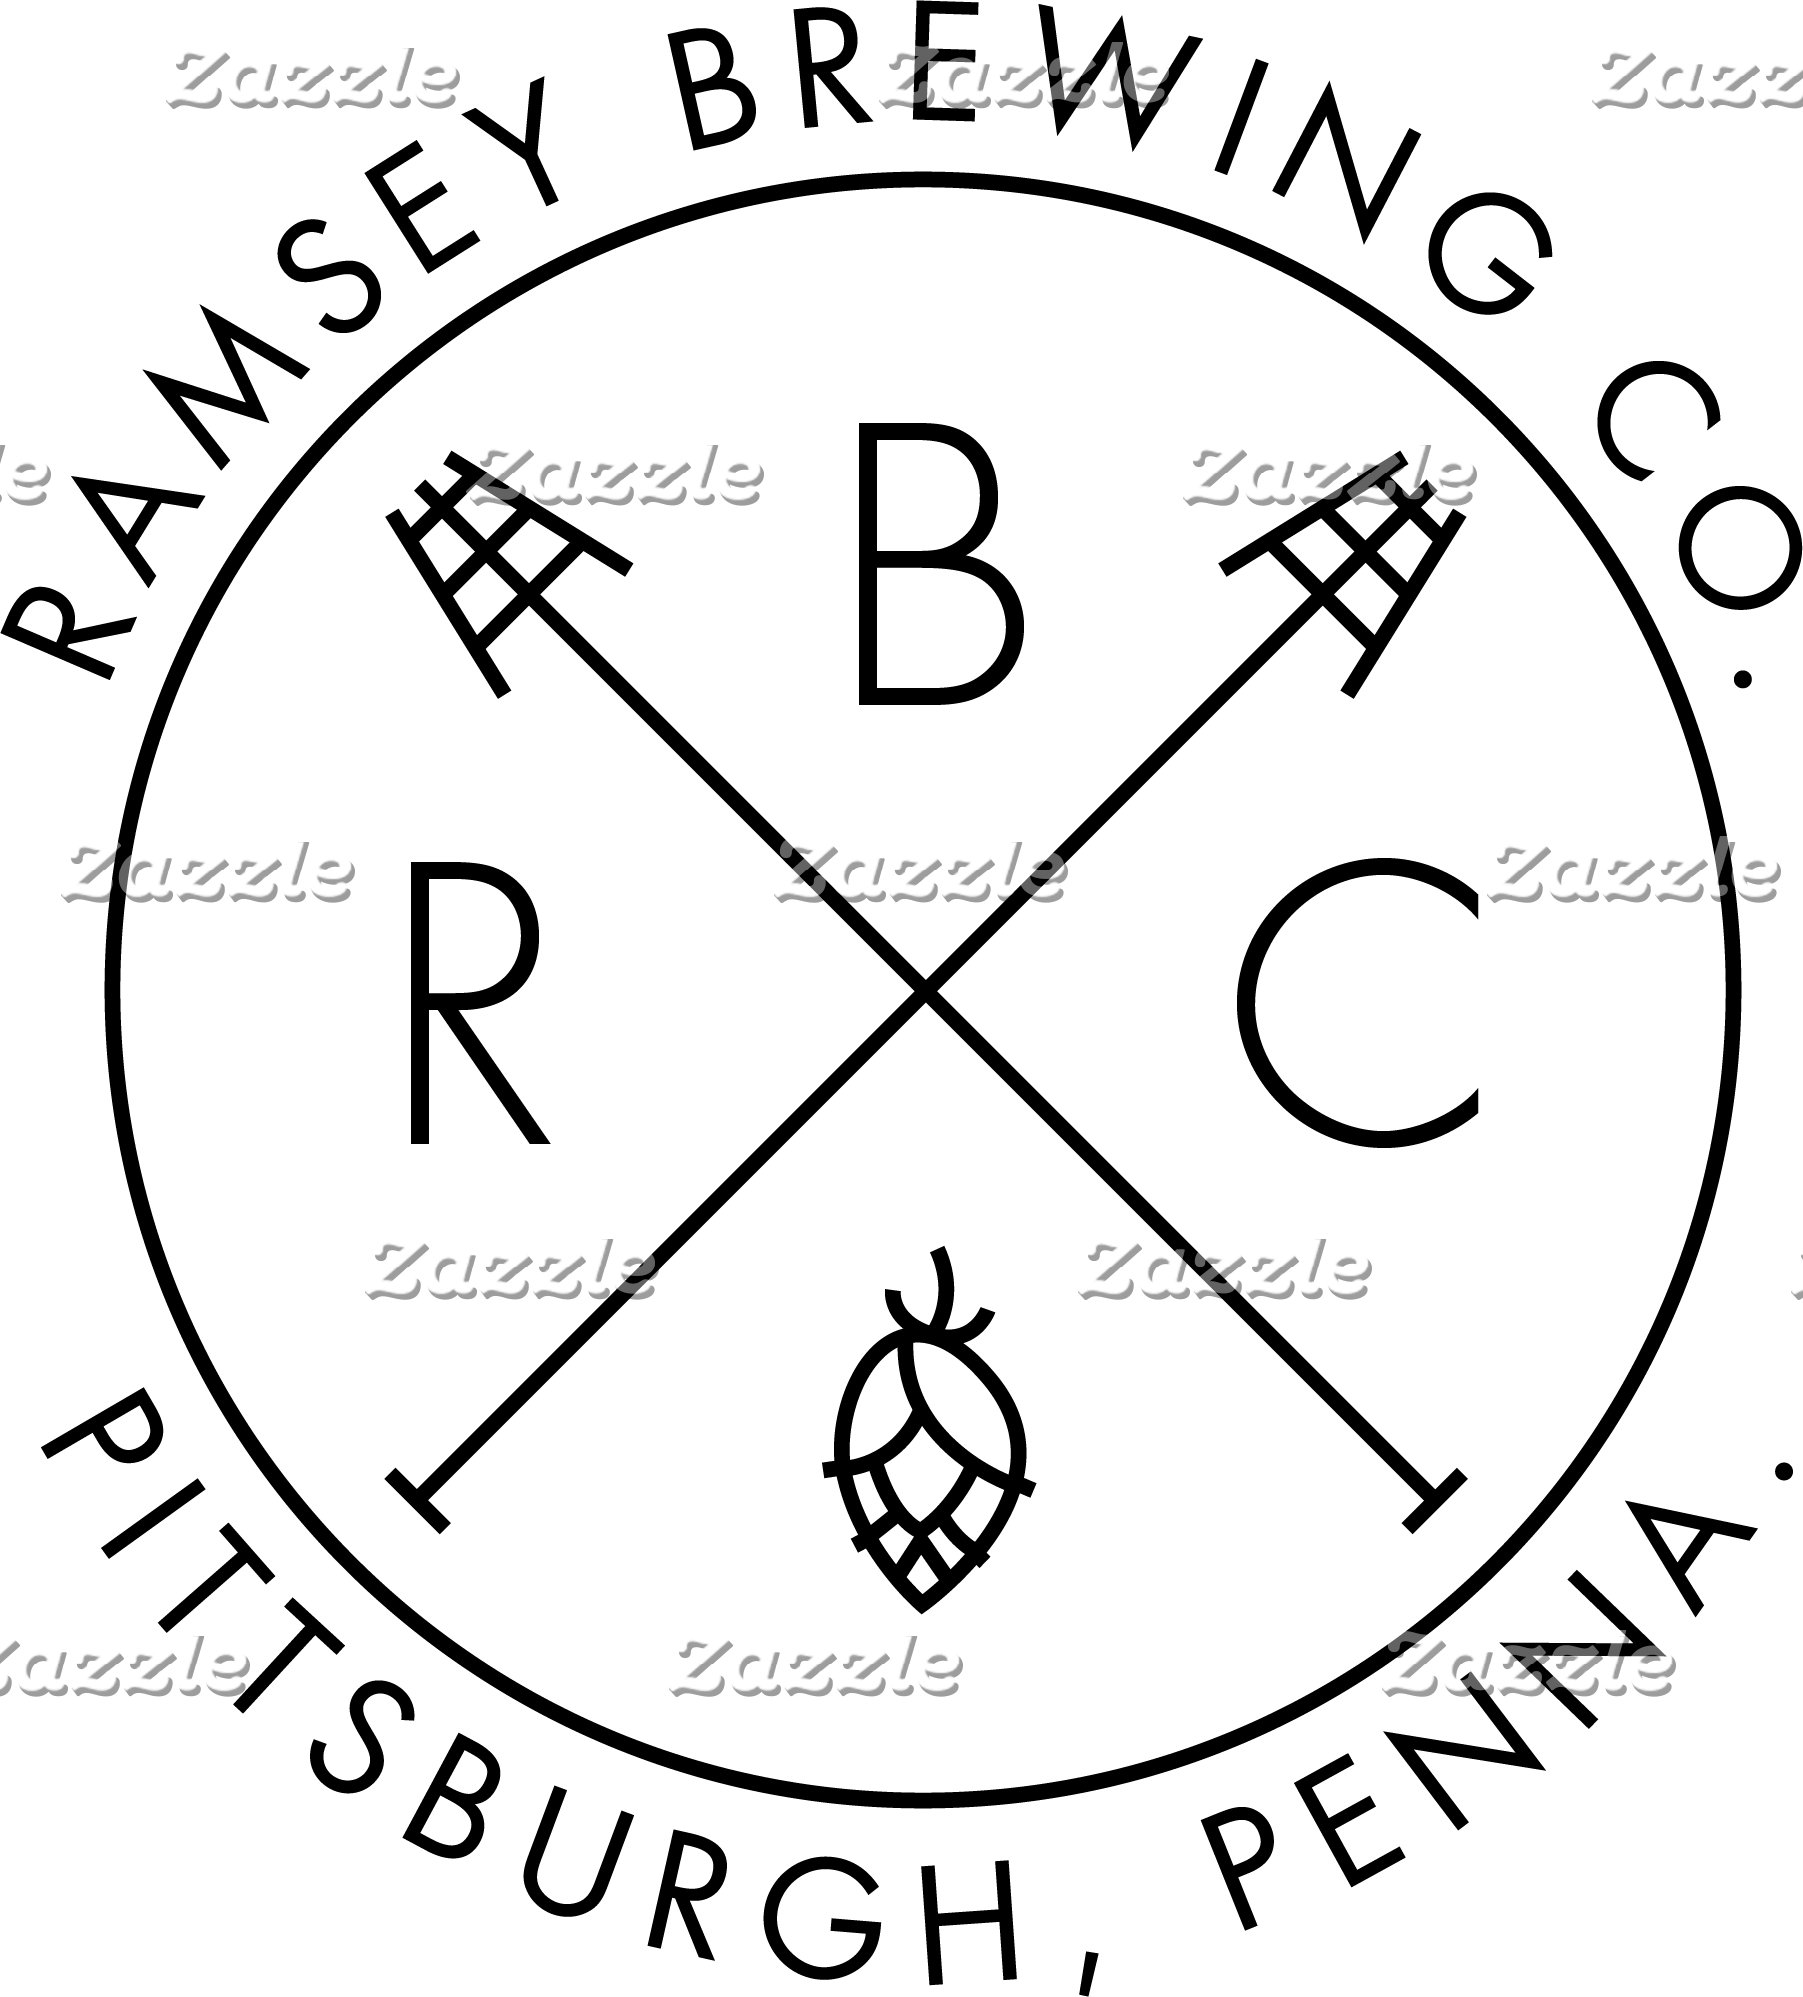 Ramsey Brewing Co.